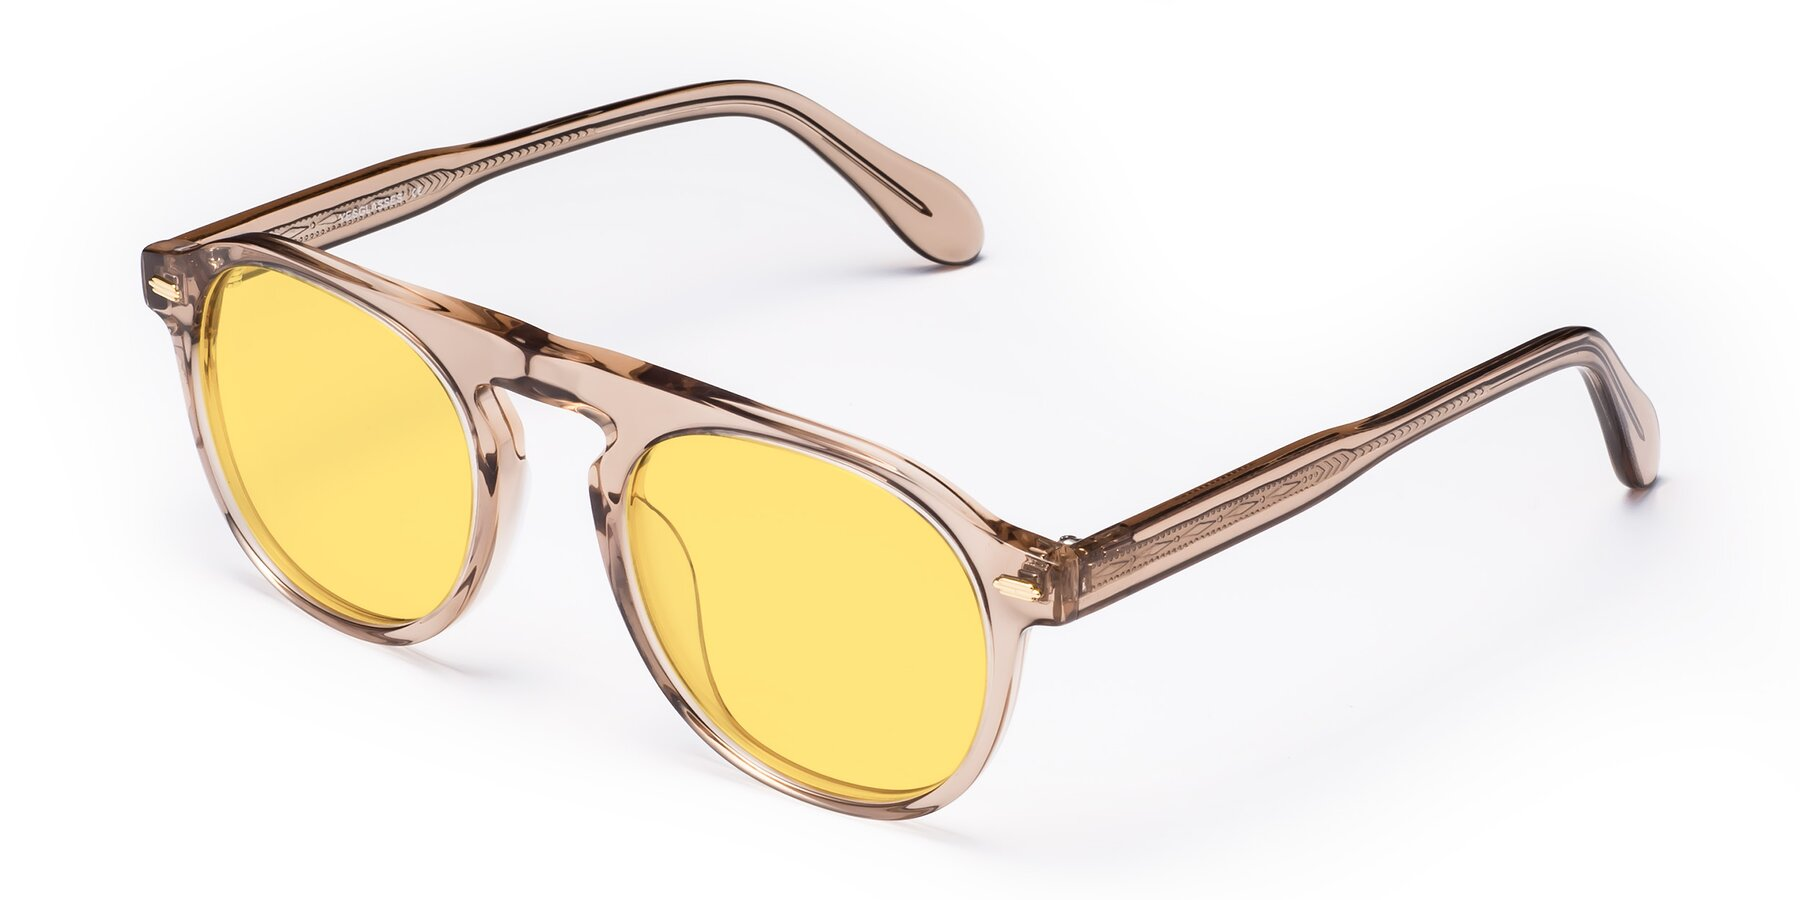 Angle of Mufasa in light Brown with Medium Yellow Tinted Lenses